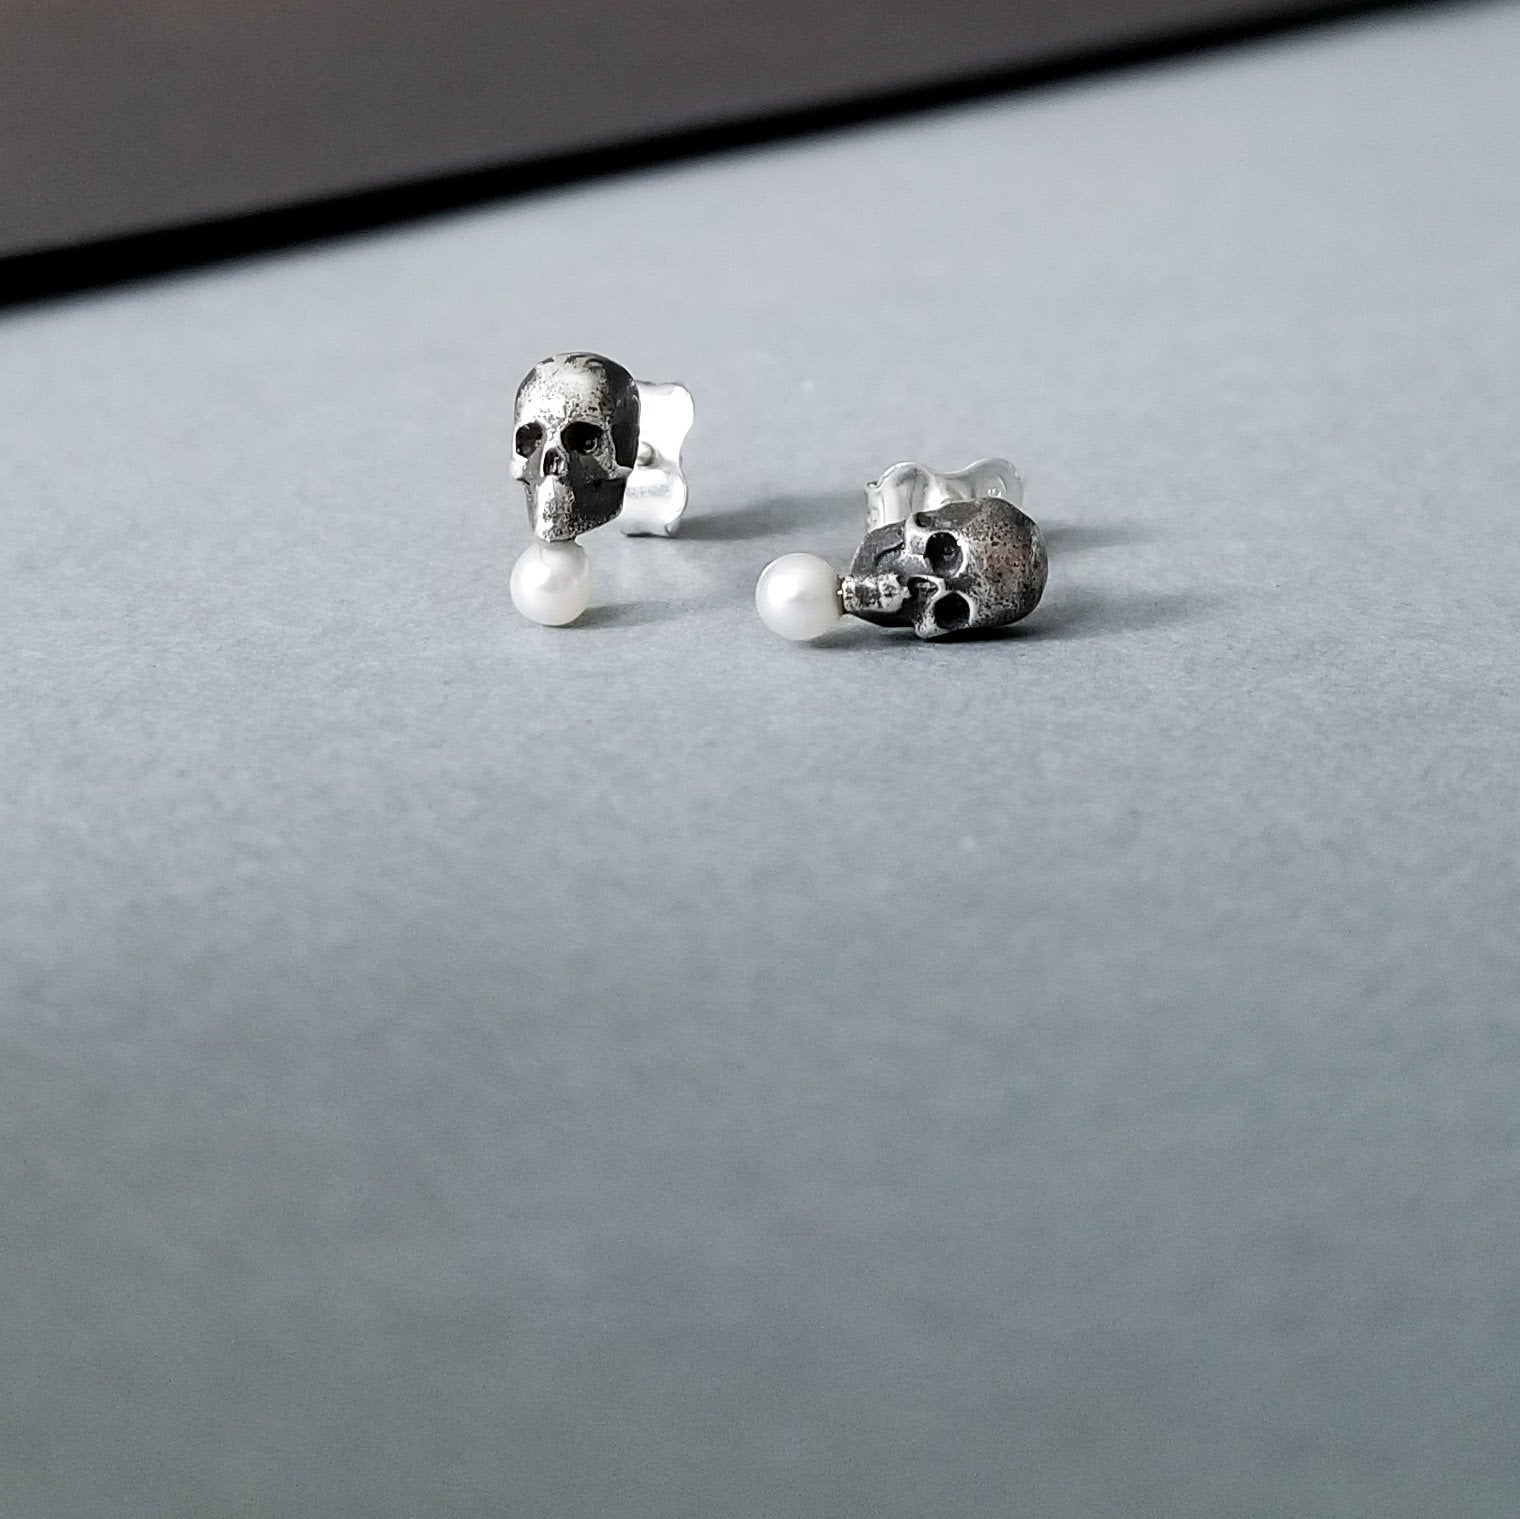 Tiny Pearl Skull Earrings - Inchoo Bijoux